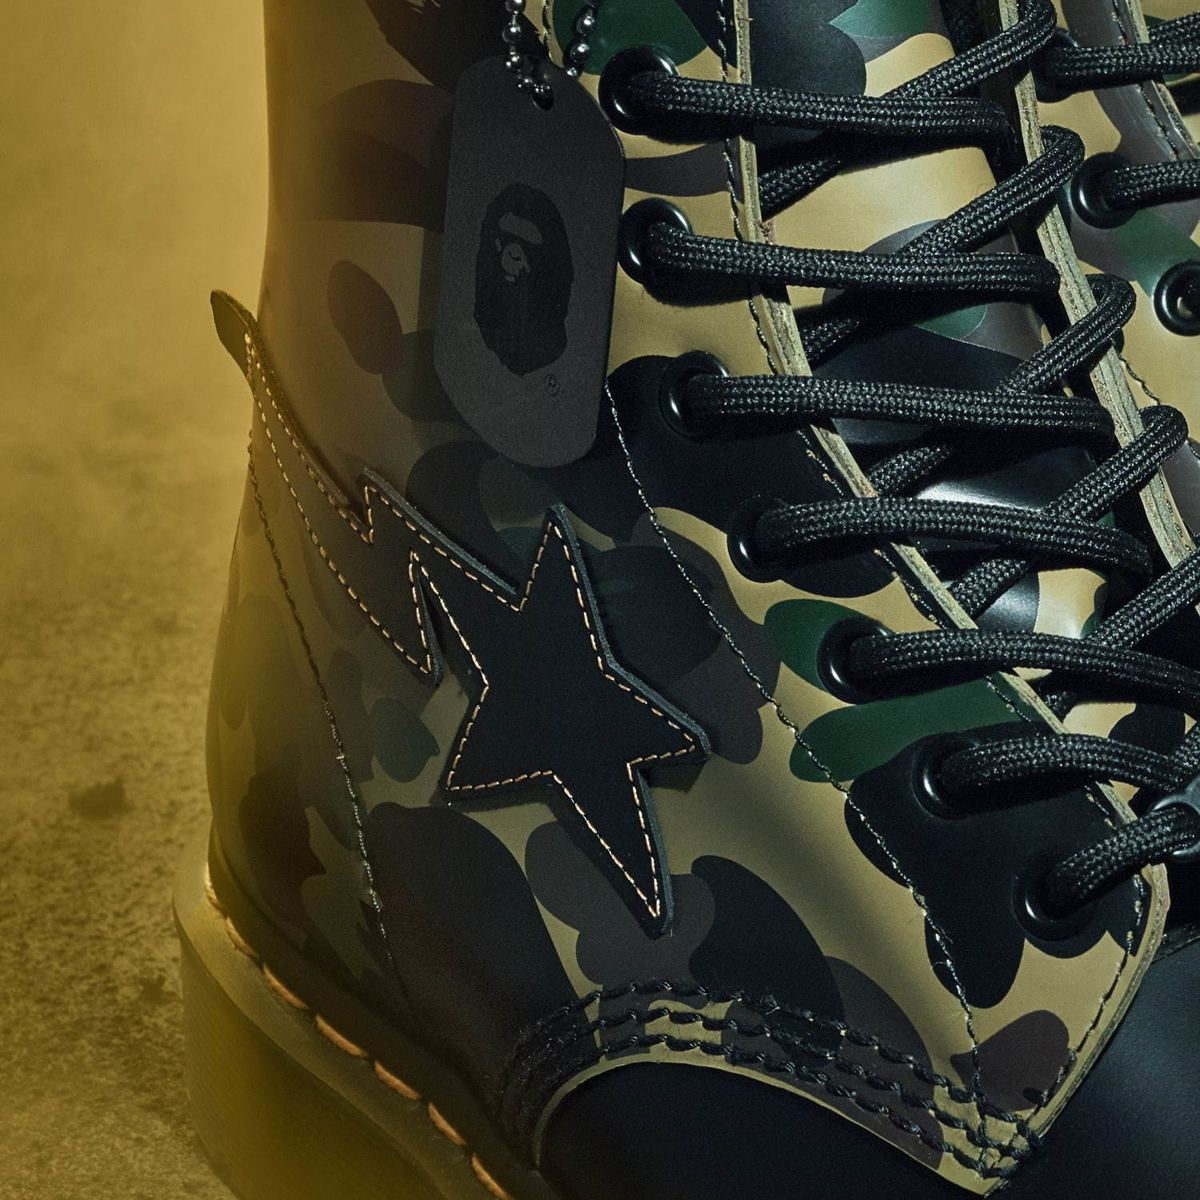 Dr. Martens 1460 8HOLE BOOTS REMASTERED BAPE 1ST CAMO